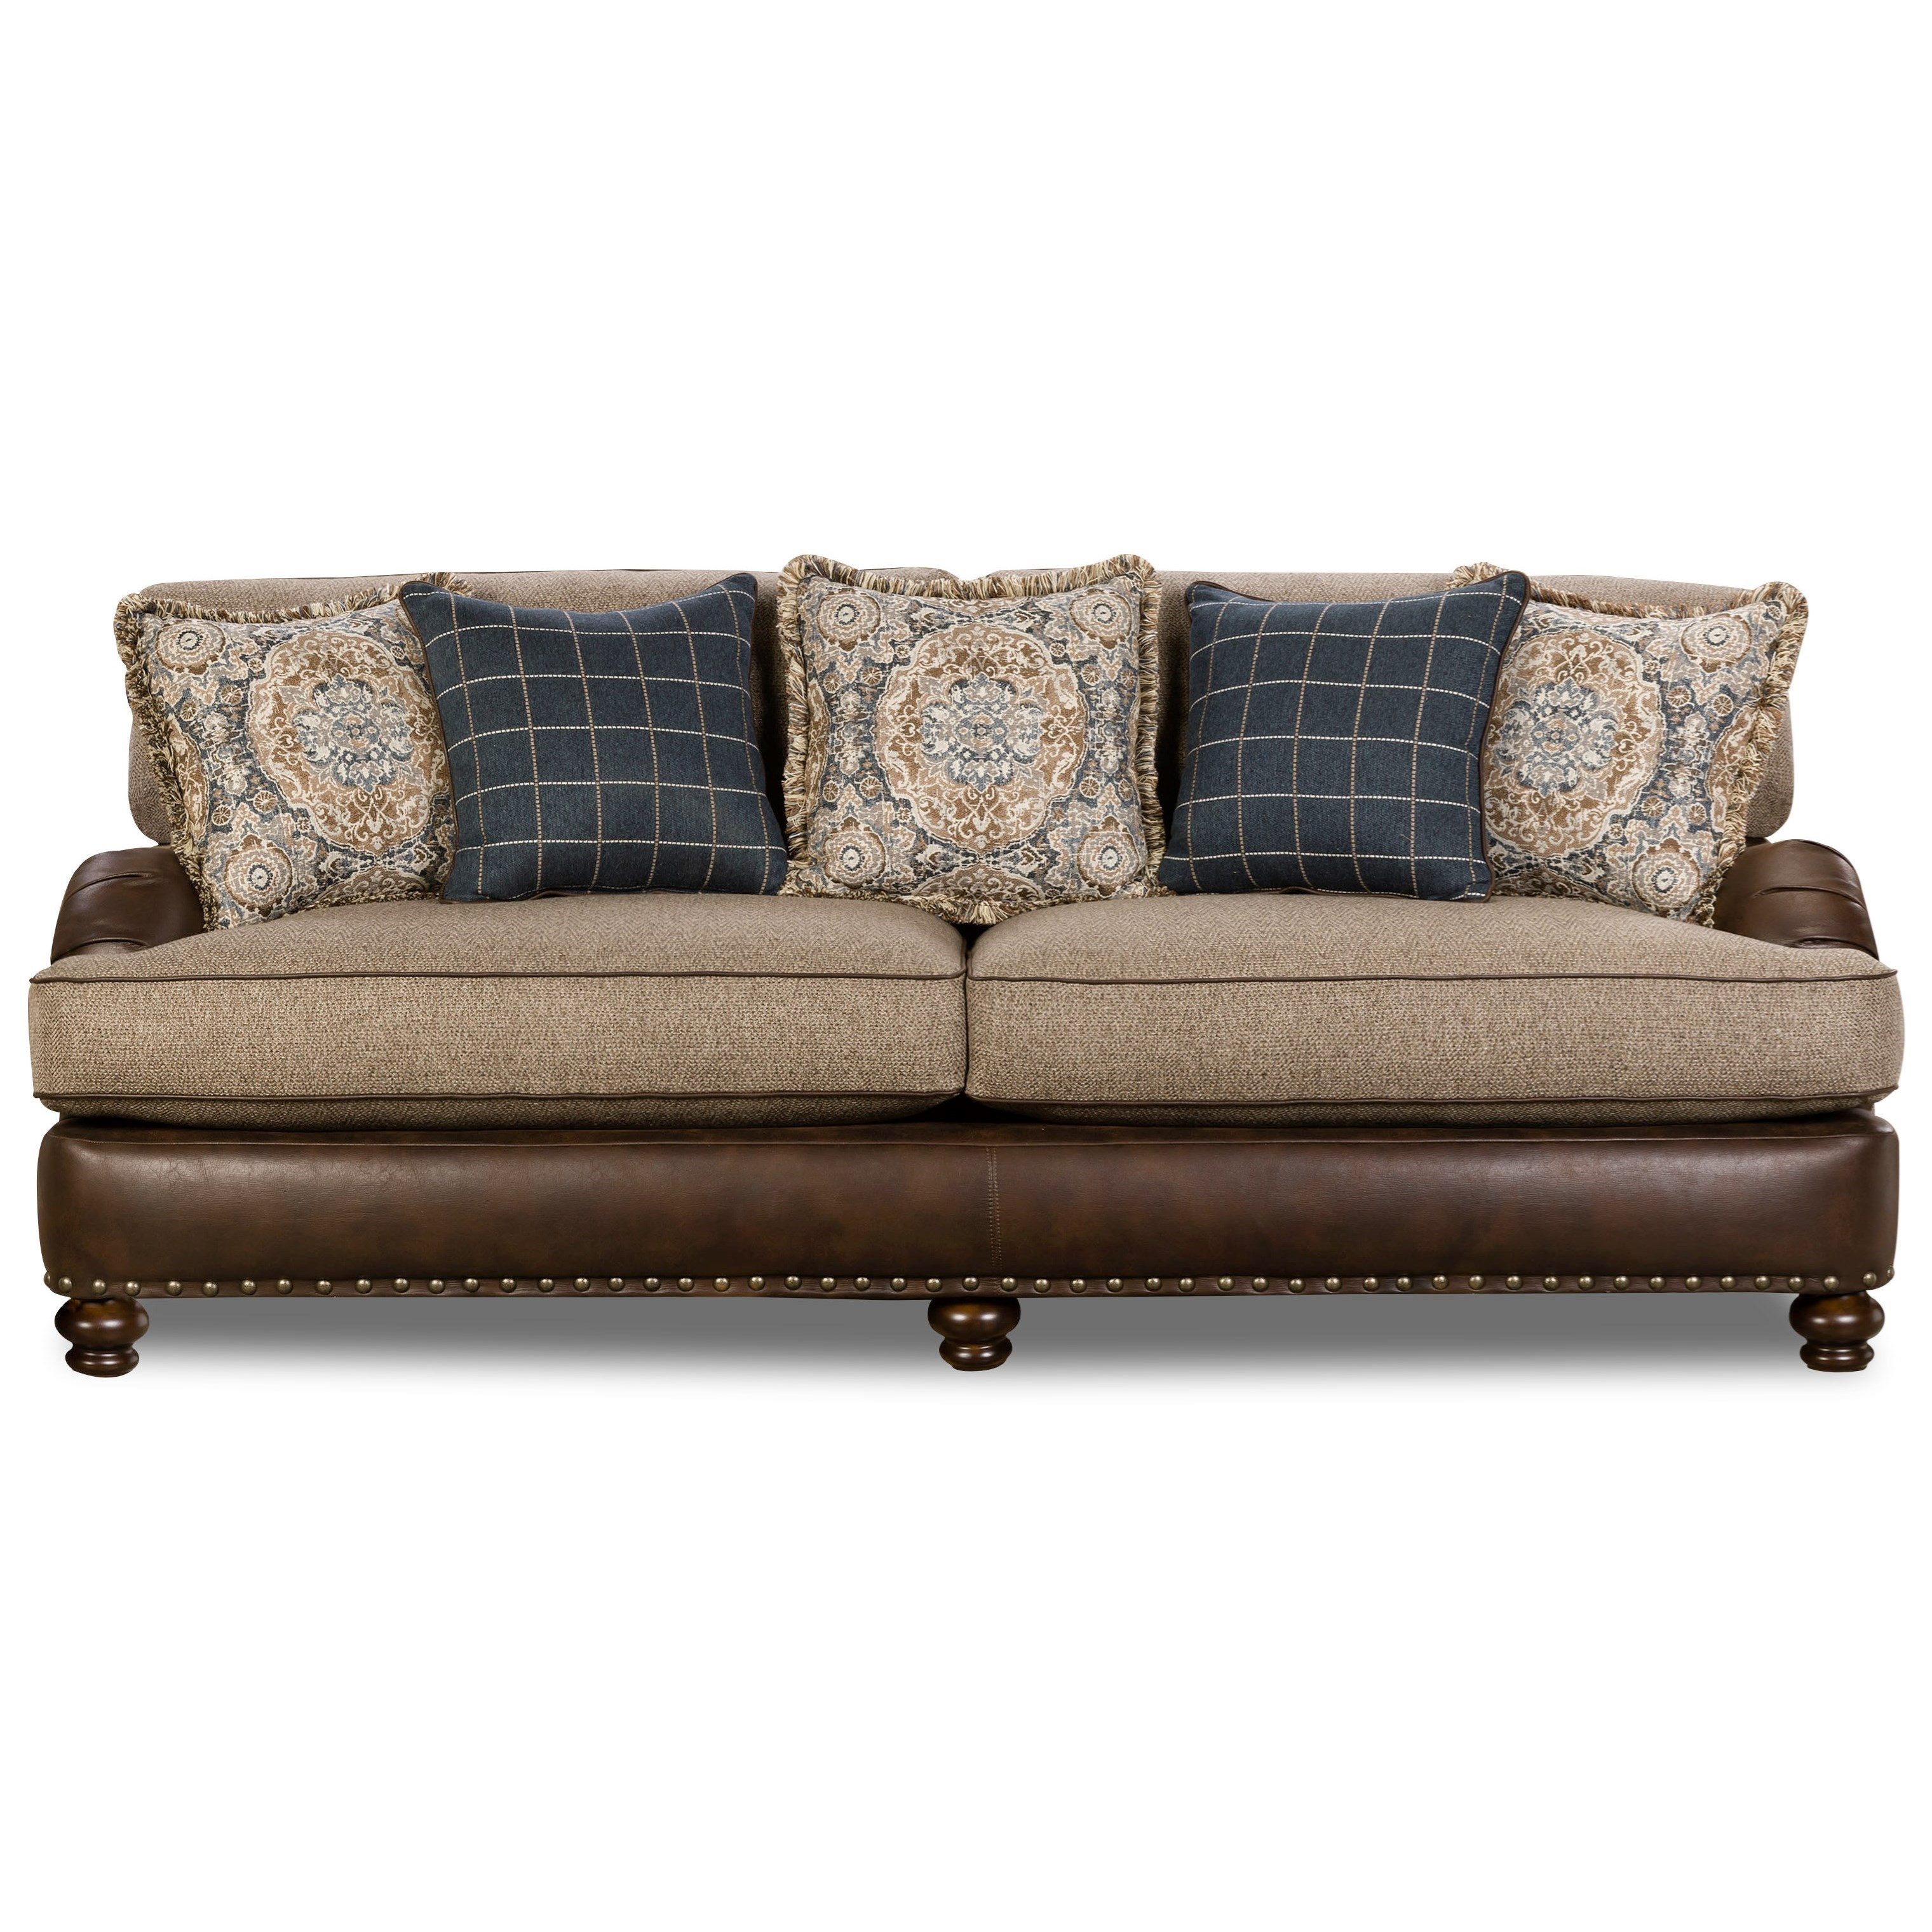 Corinthian 5300 Traditional Styled Sectional Sofa With: Corinthian 2000 Traditional Sofa